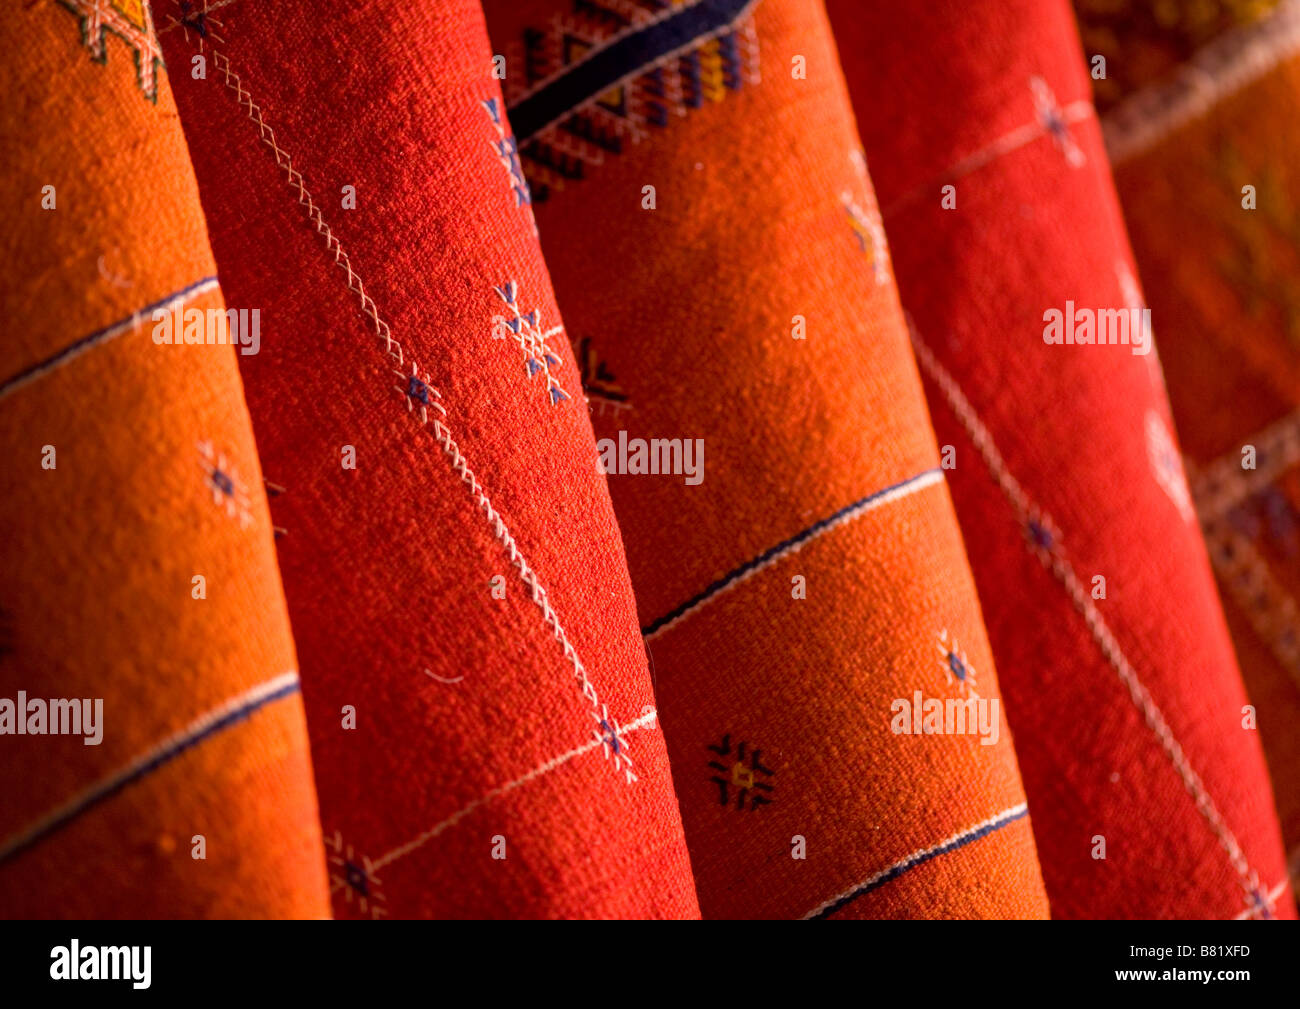 Red and orange Morrocan rugs hung for sale in the souks of Marrakech, Morocco - Stock Image